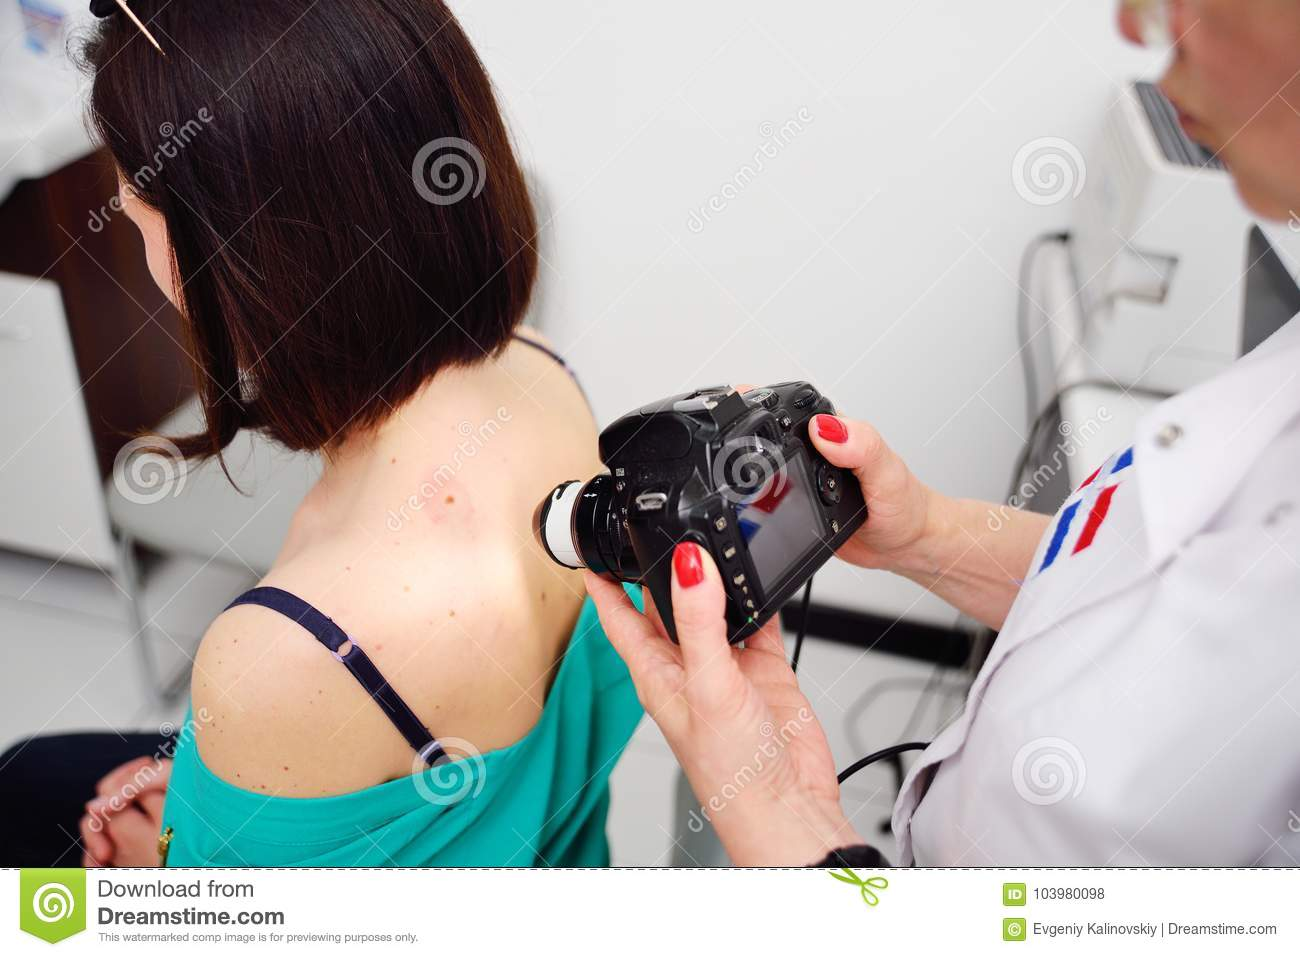 The dermatologist examines the moles or acne of the patient with a dermatoscope